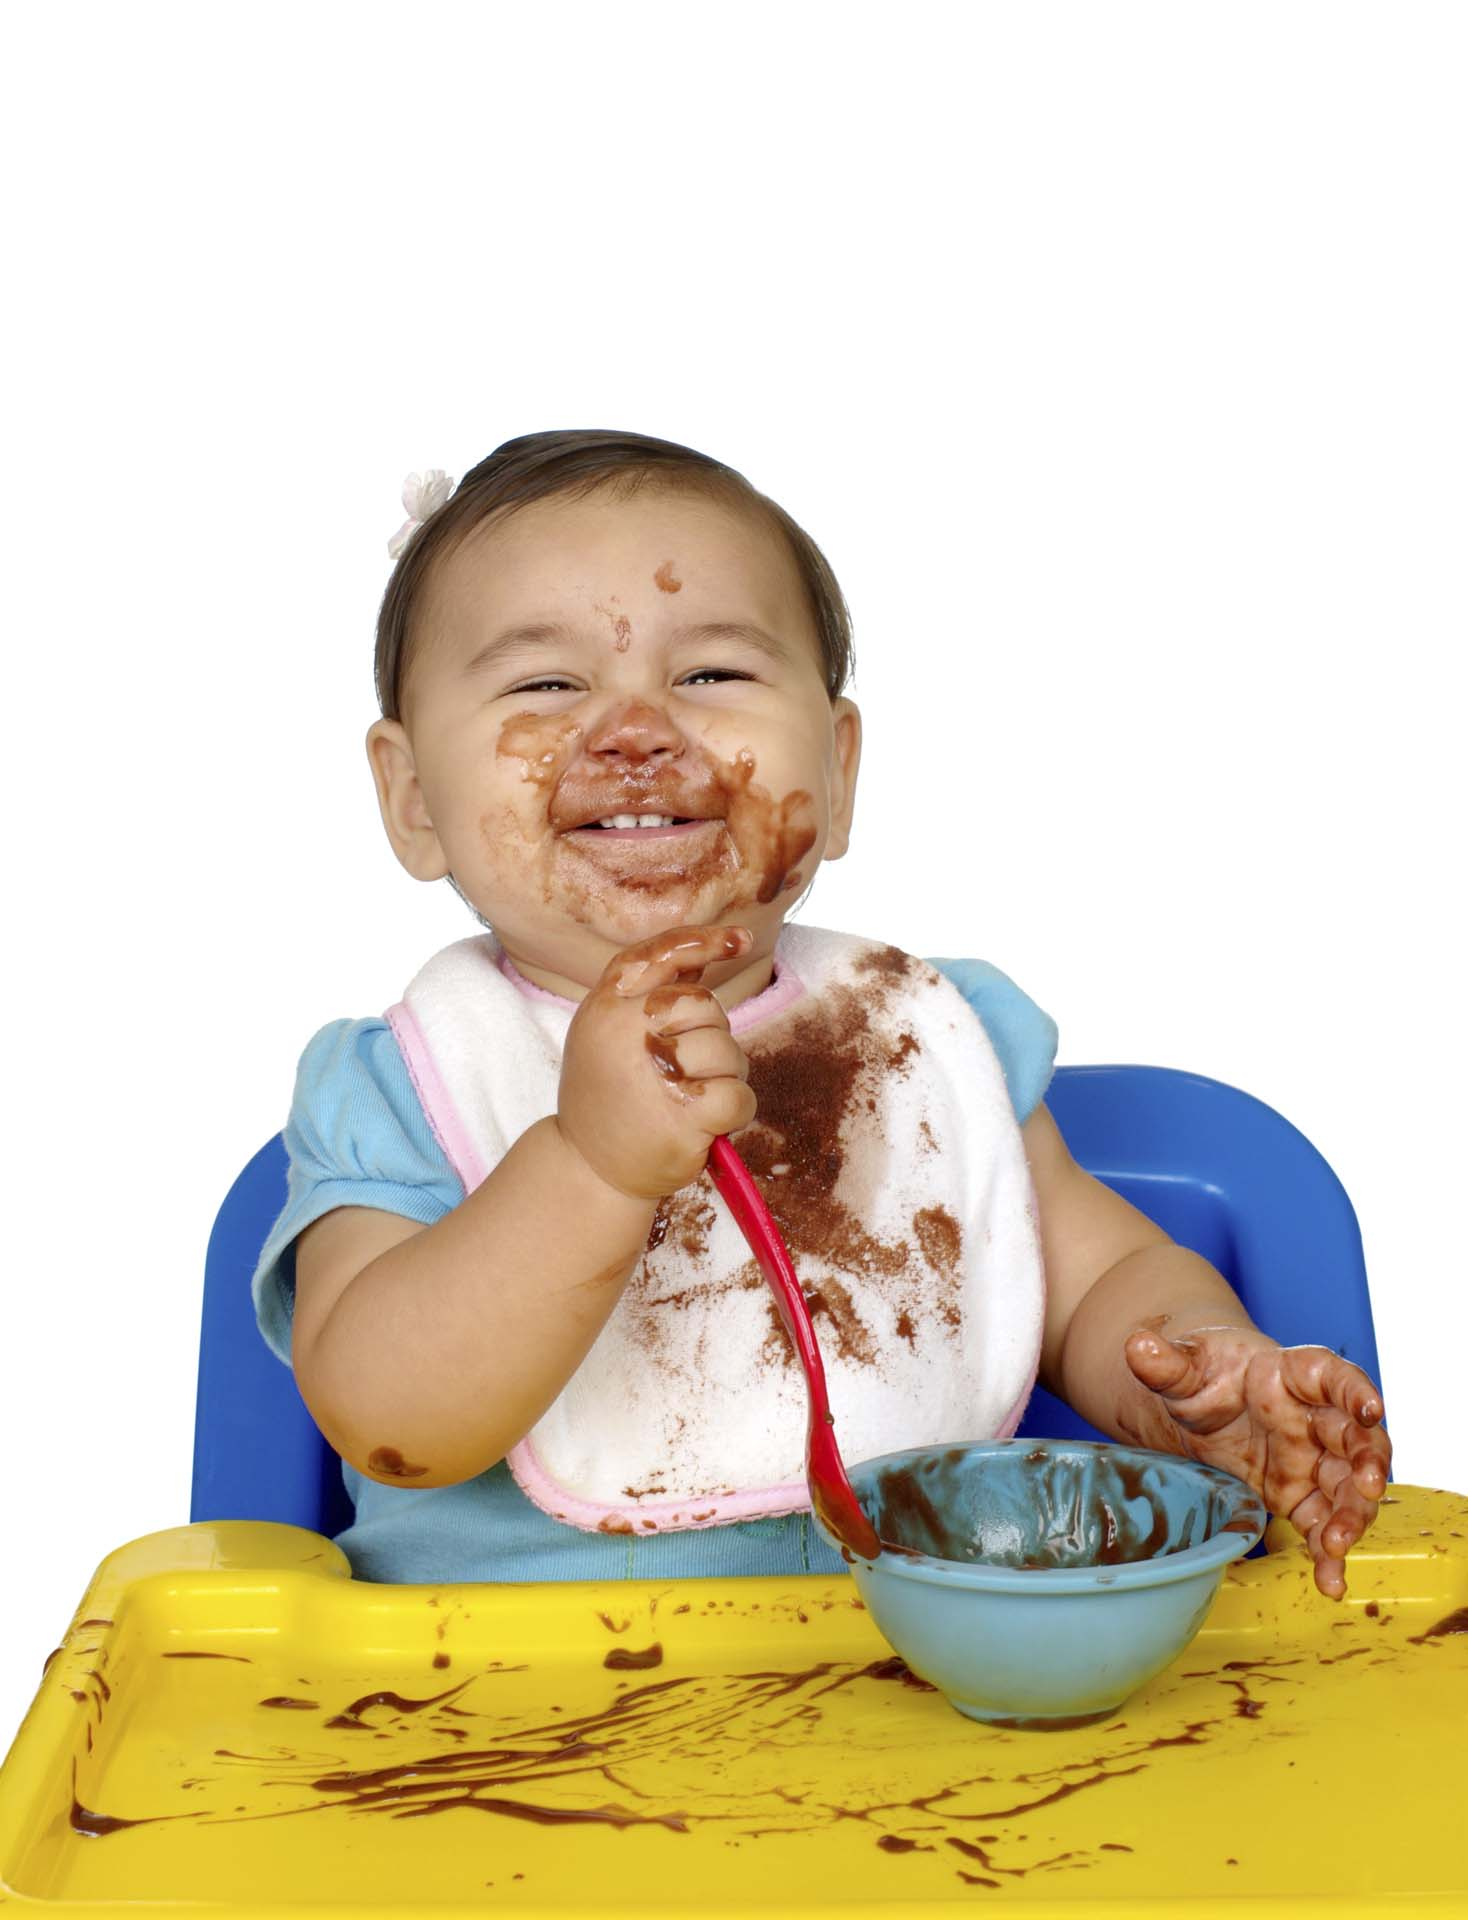 baby girl eating chocolate pudding, messy face